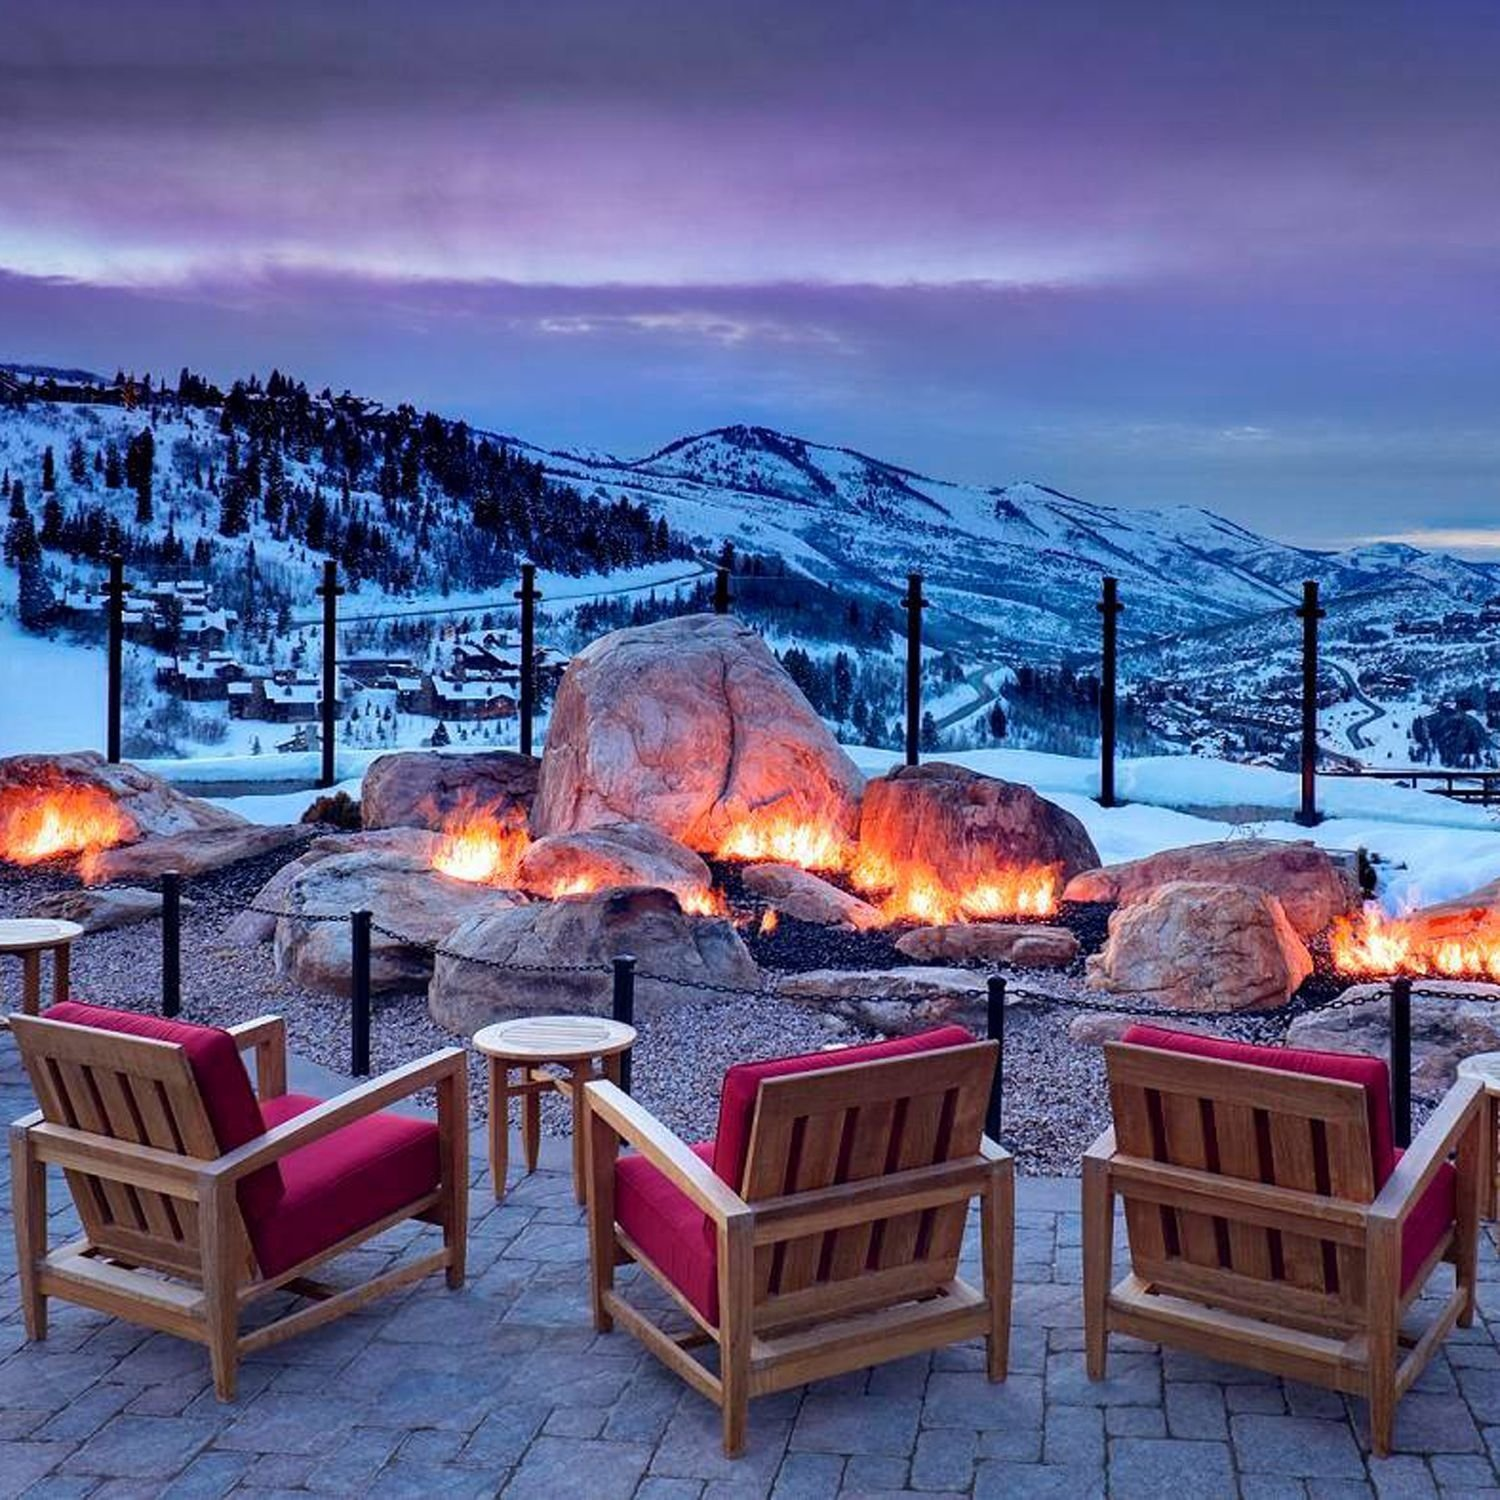 10 Gorgeous Winter Vacation Ideas For Families the 8 most luxurious mountain resorts in america mountain resort 1 2020